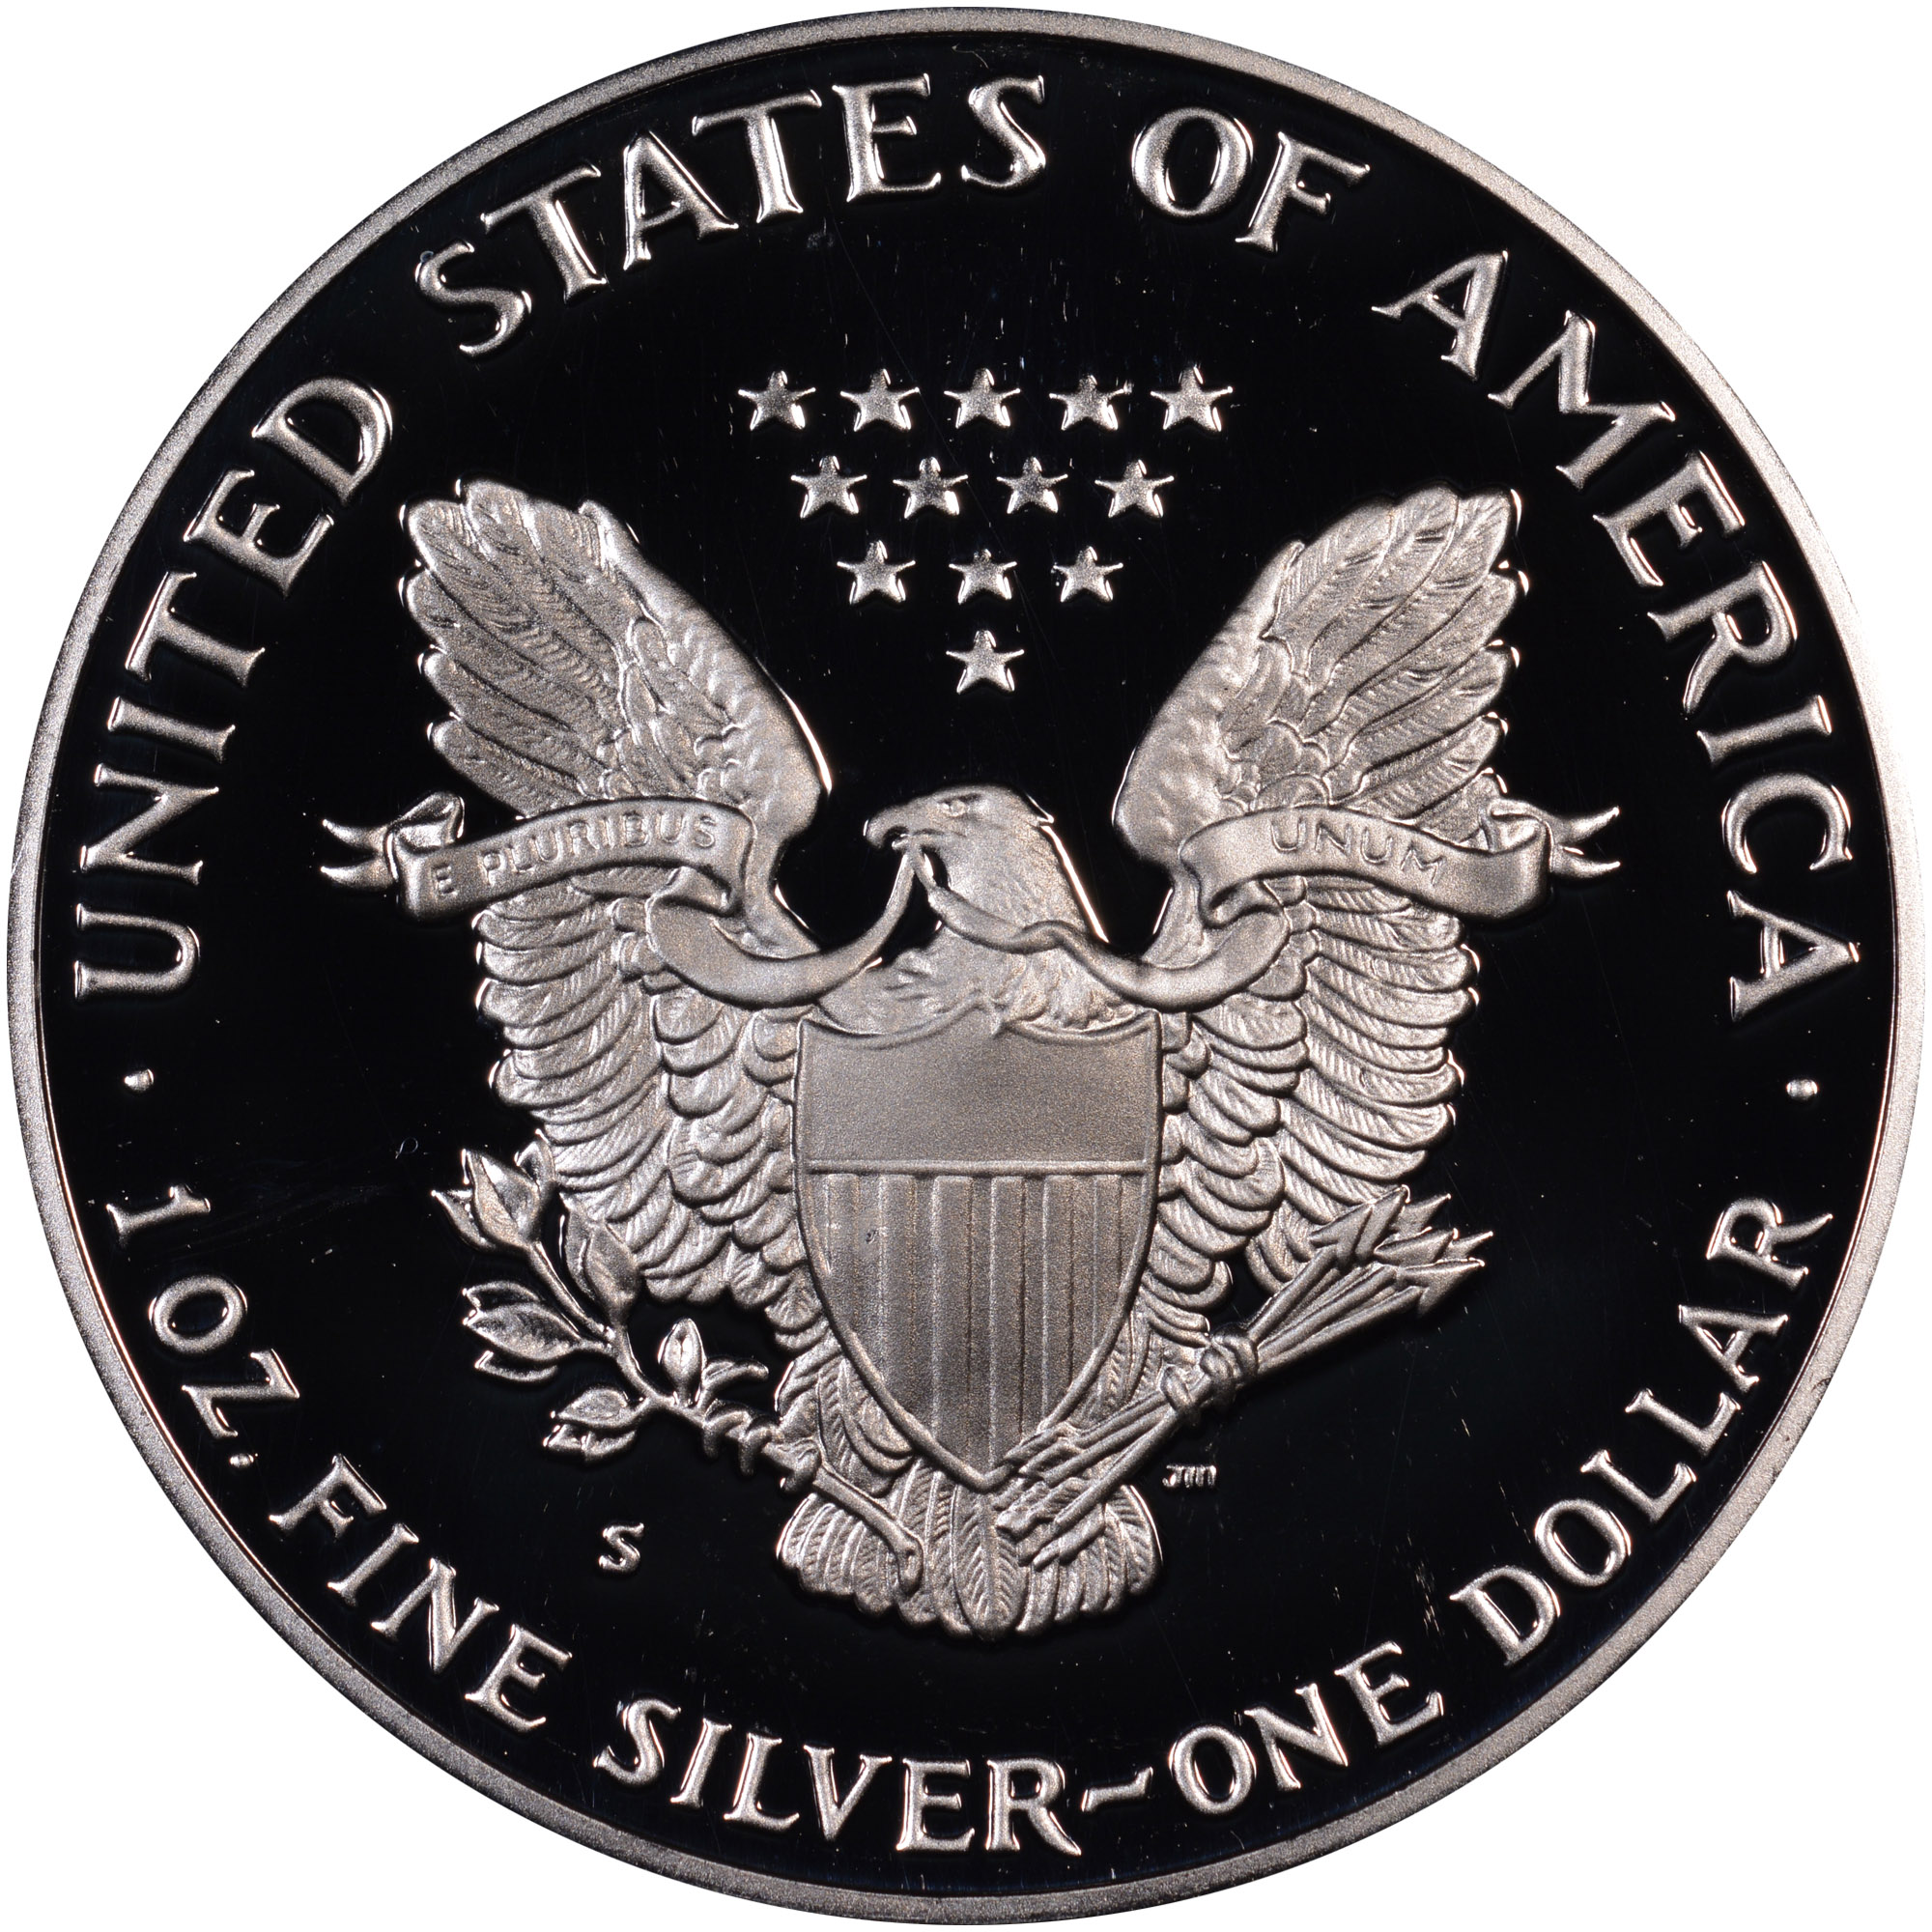 silver eagle coins price guide